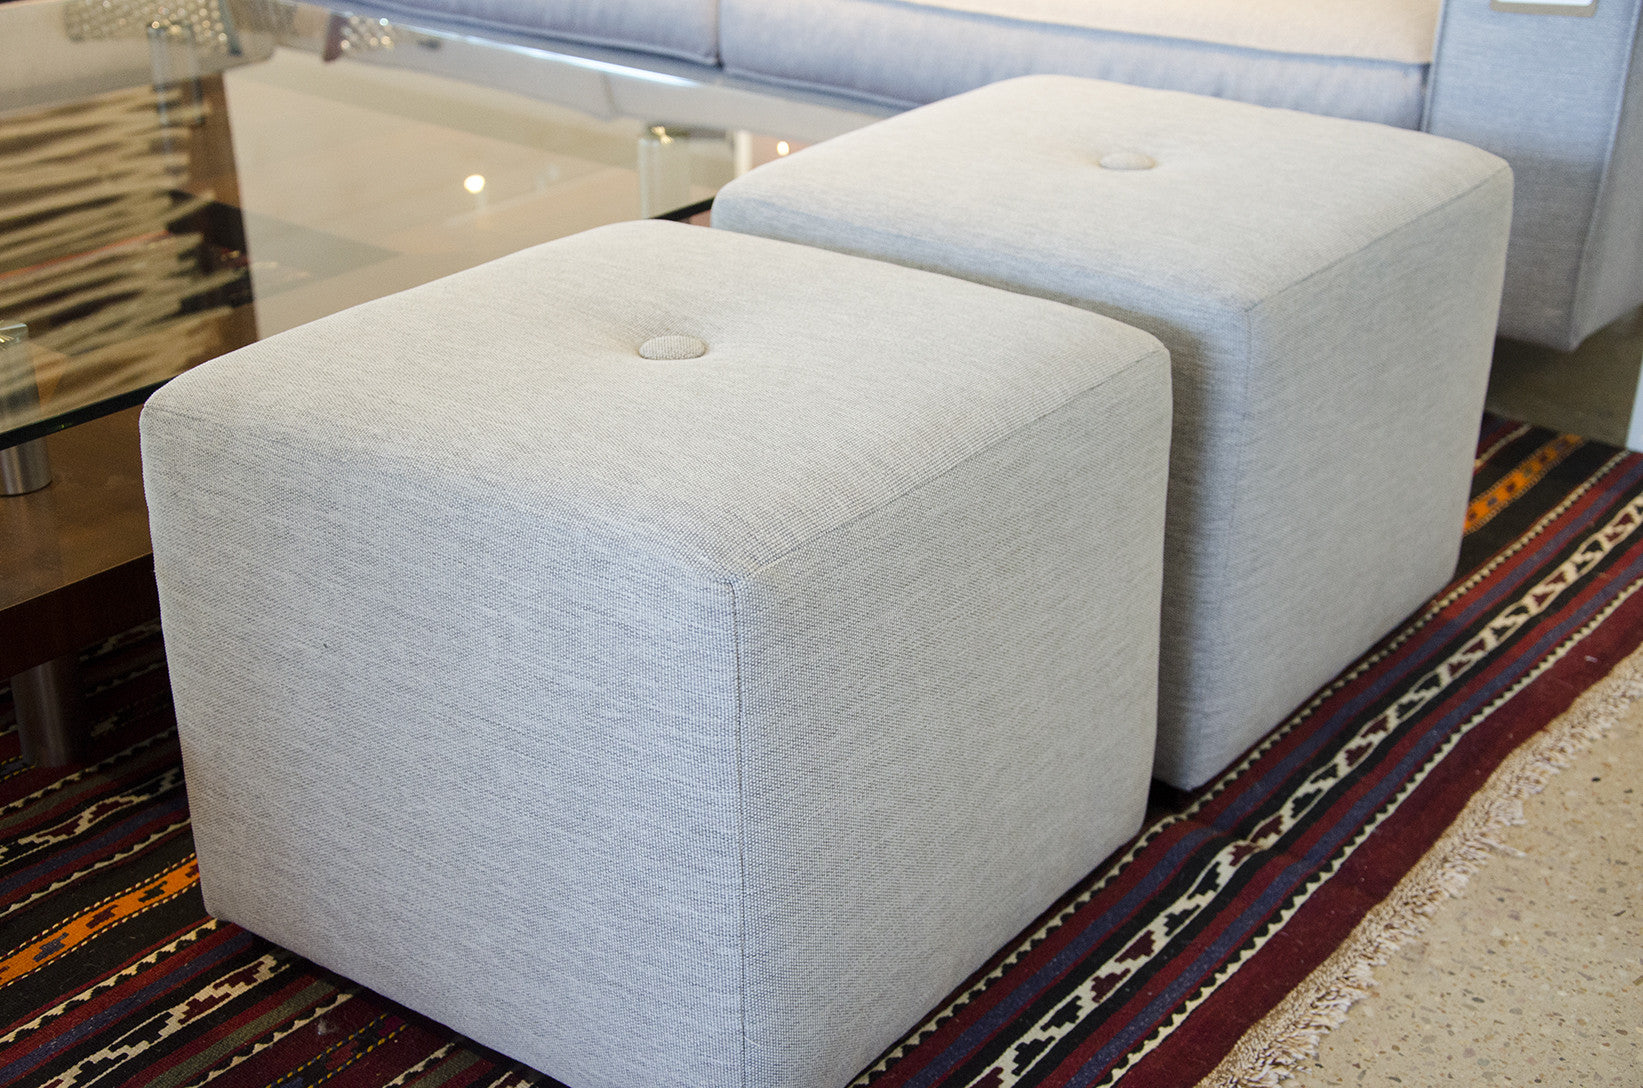 Cool Footstool Storage Cubes Fabric Storage Ottomans: Contemporary Cube Ottomans Customize At Five Elements